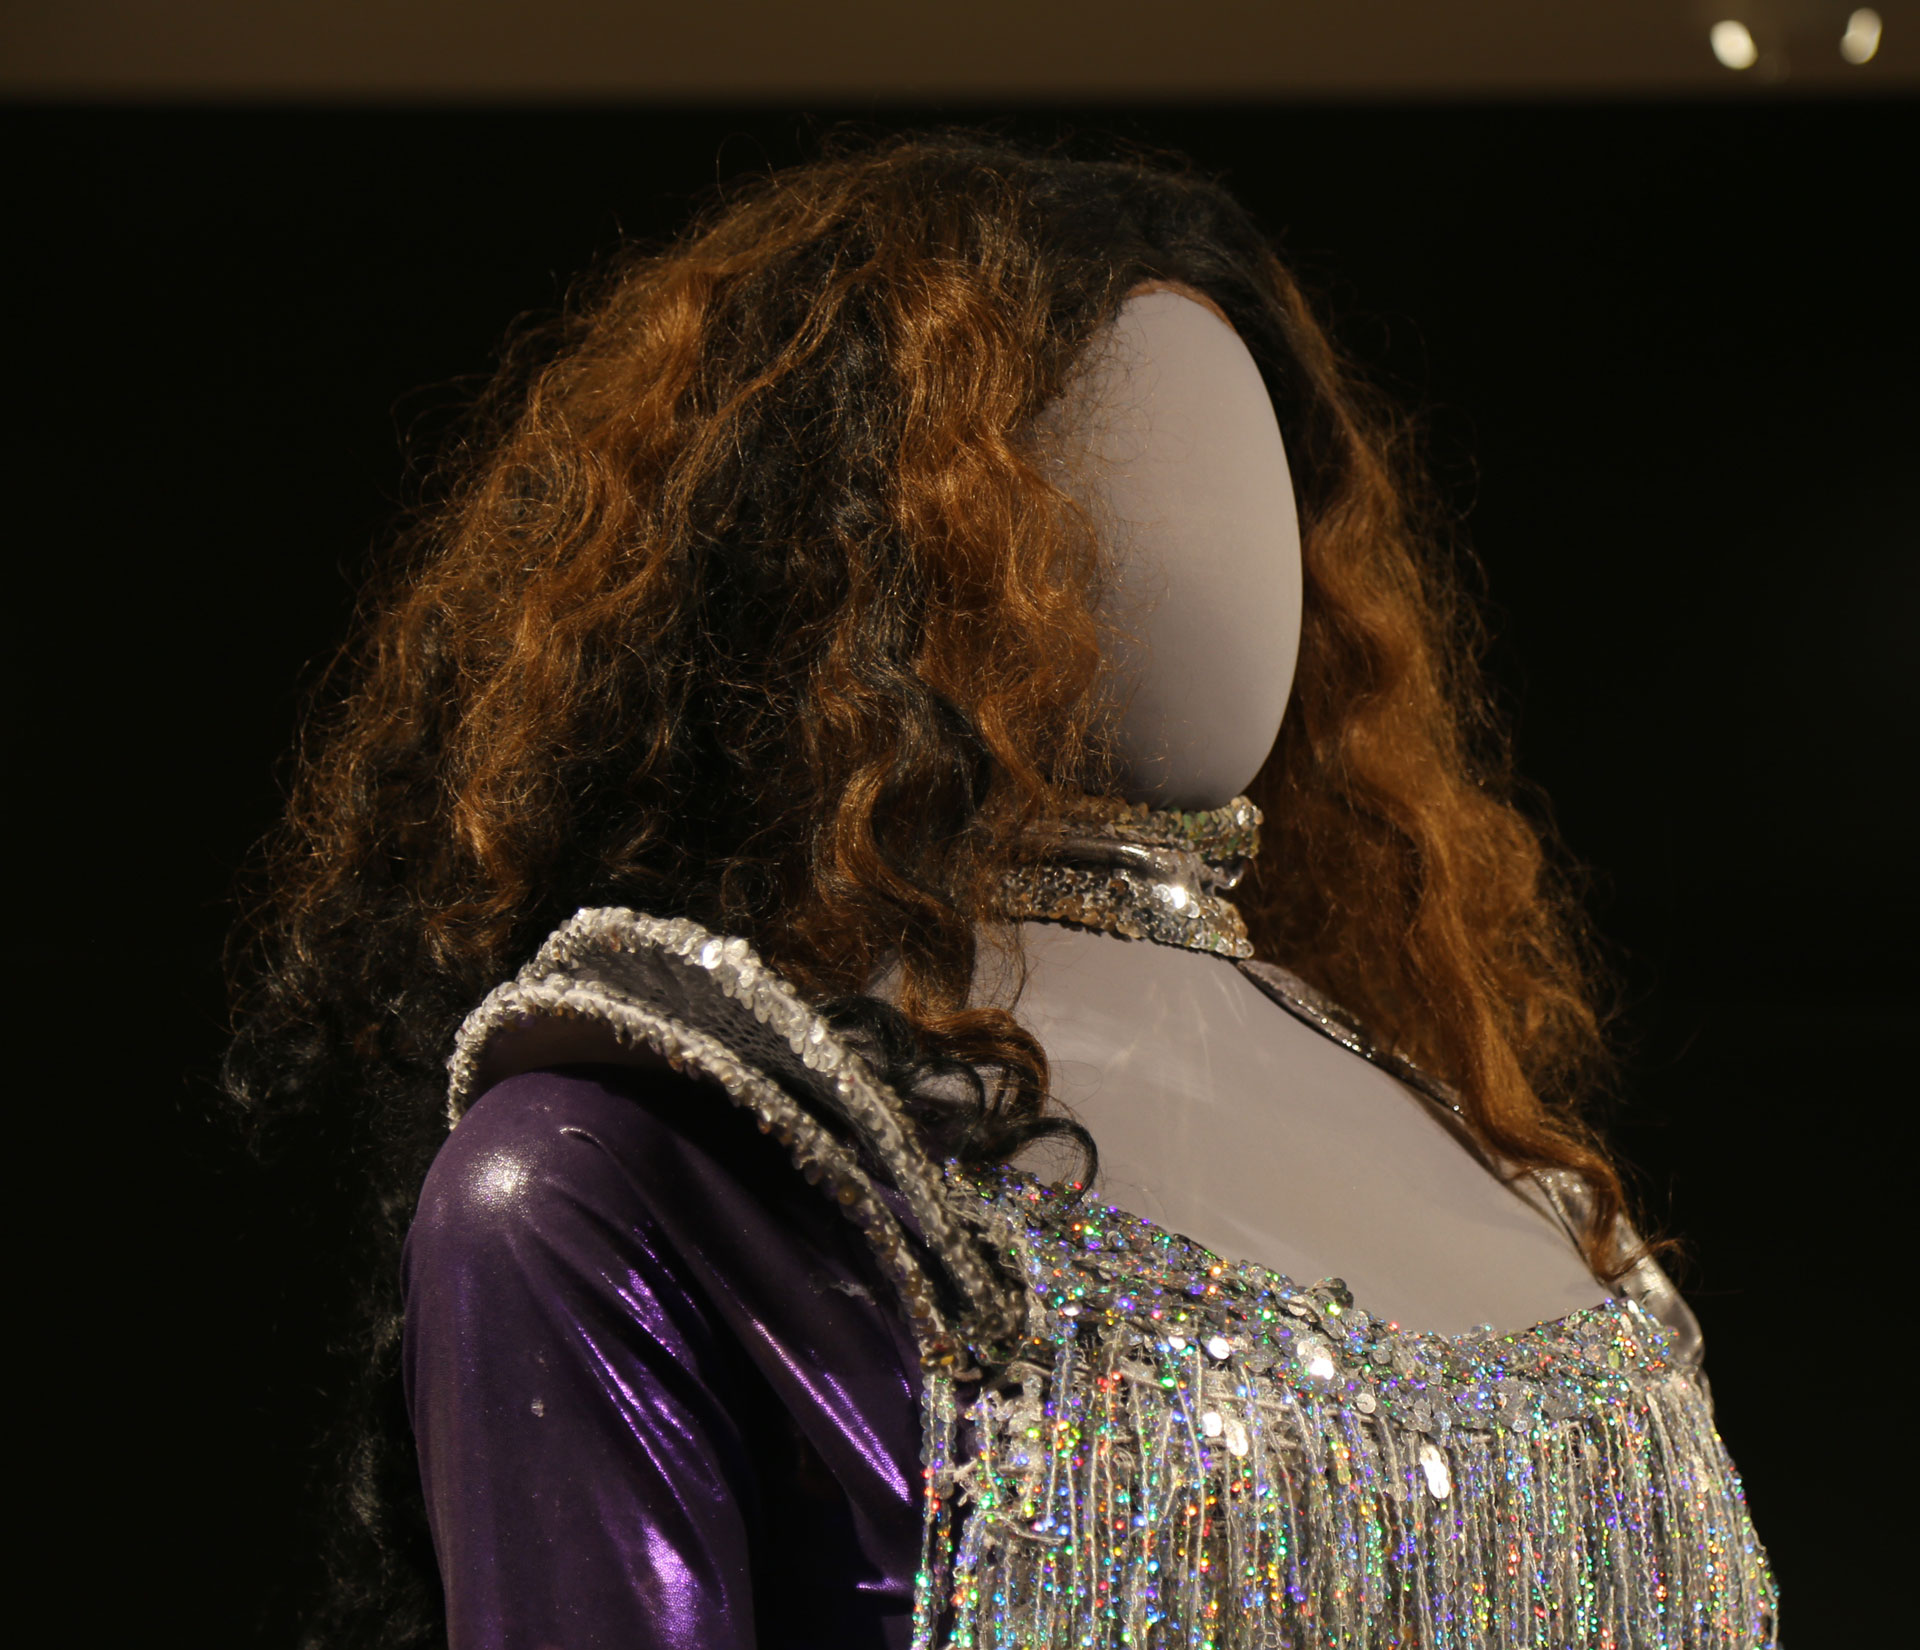 diagonal view of mannequin head with curly hair and sparkly costume with purple sleeves